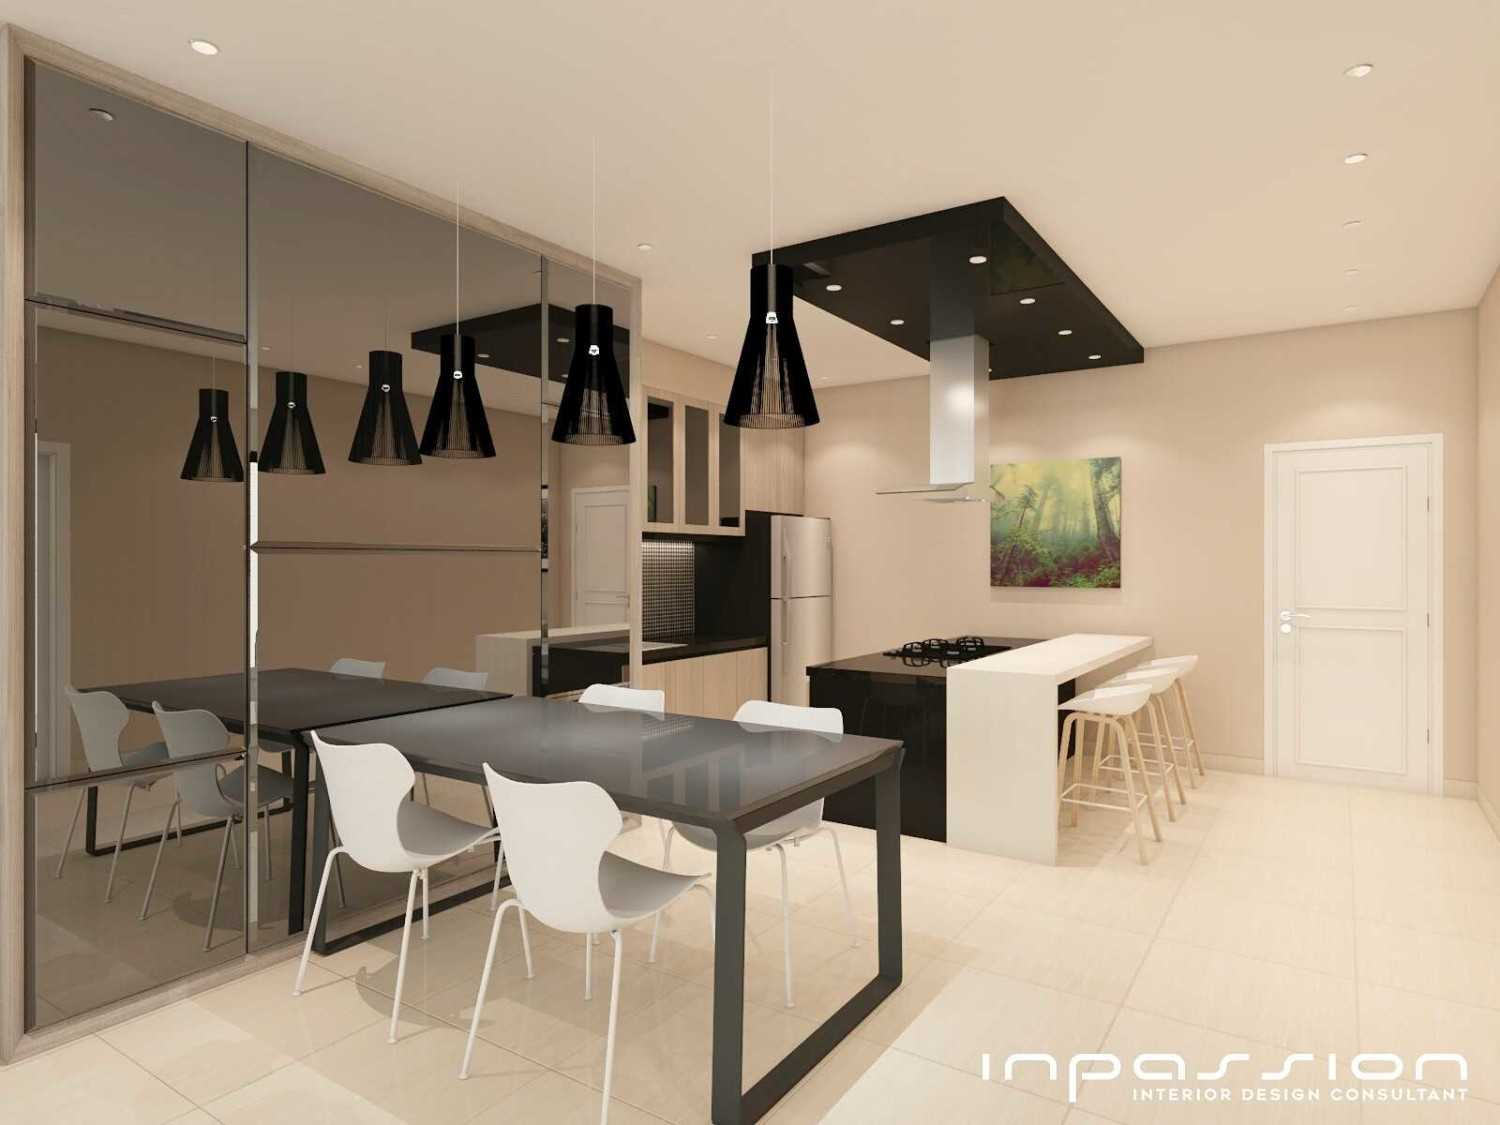 Inpassion Interior Design Kitchenset Design Surabaya Surabaya Kitchen And Dining Area Kontemporer 22158